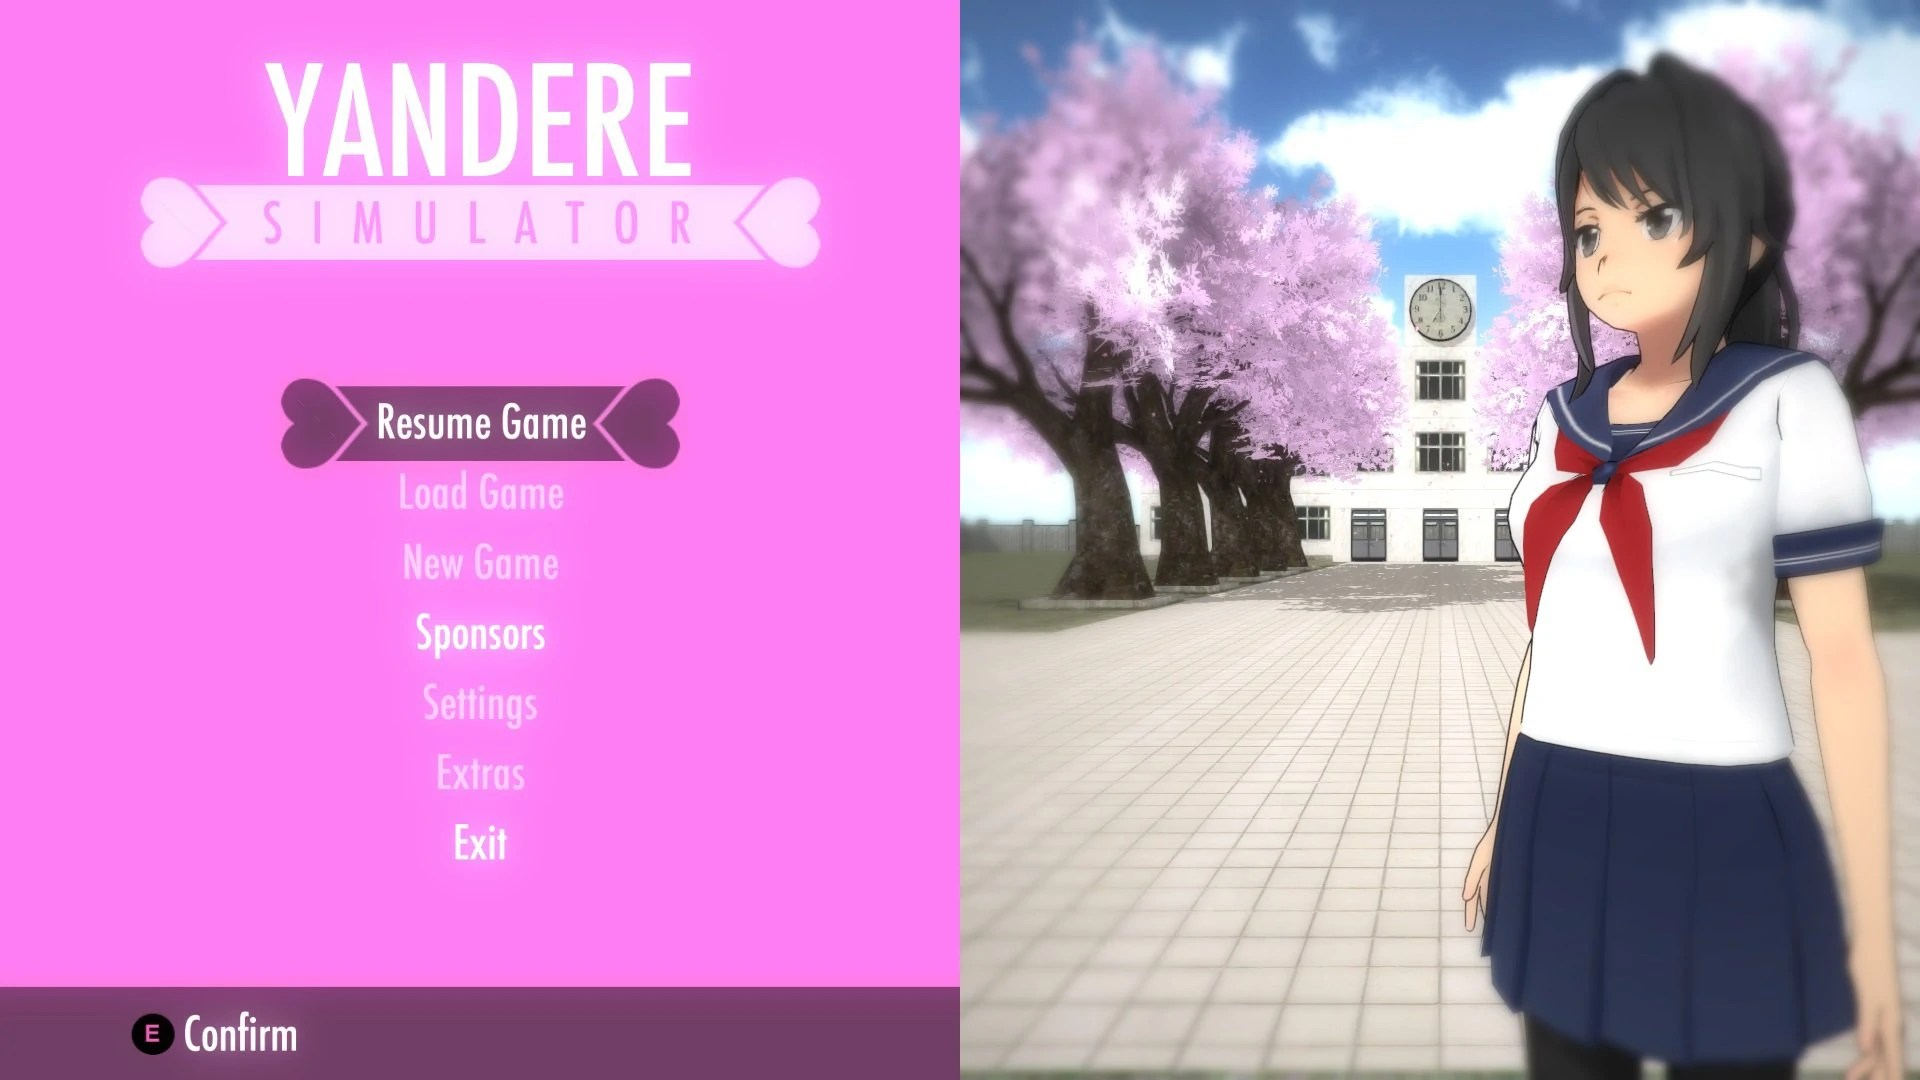 Malle A Jouet Yandere Simulator [topic Unique] - Pc - Jeux Video - Forum